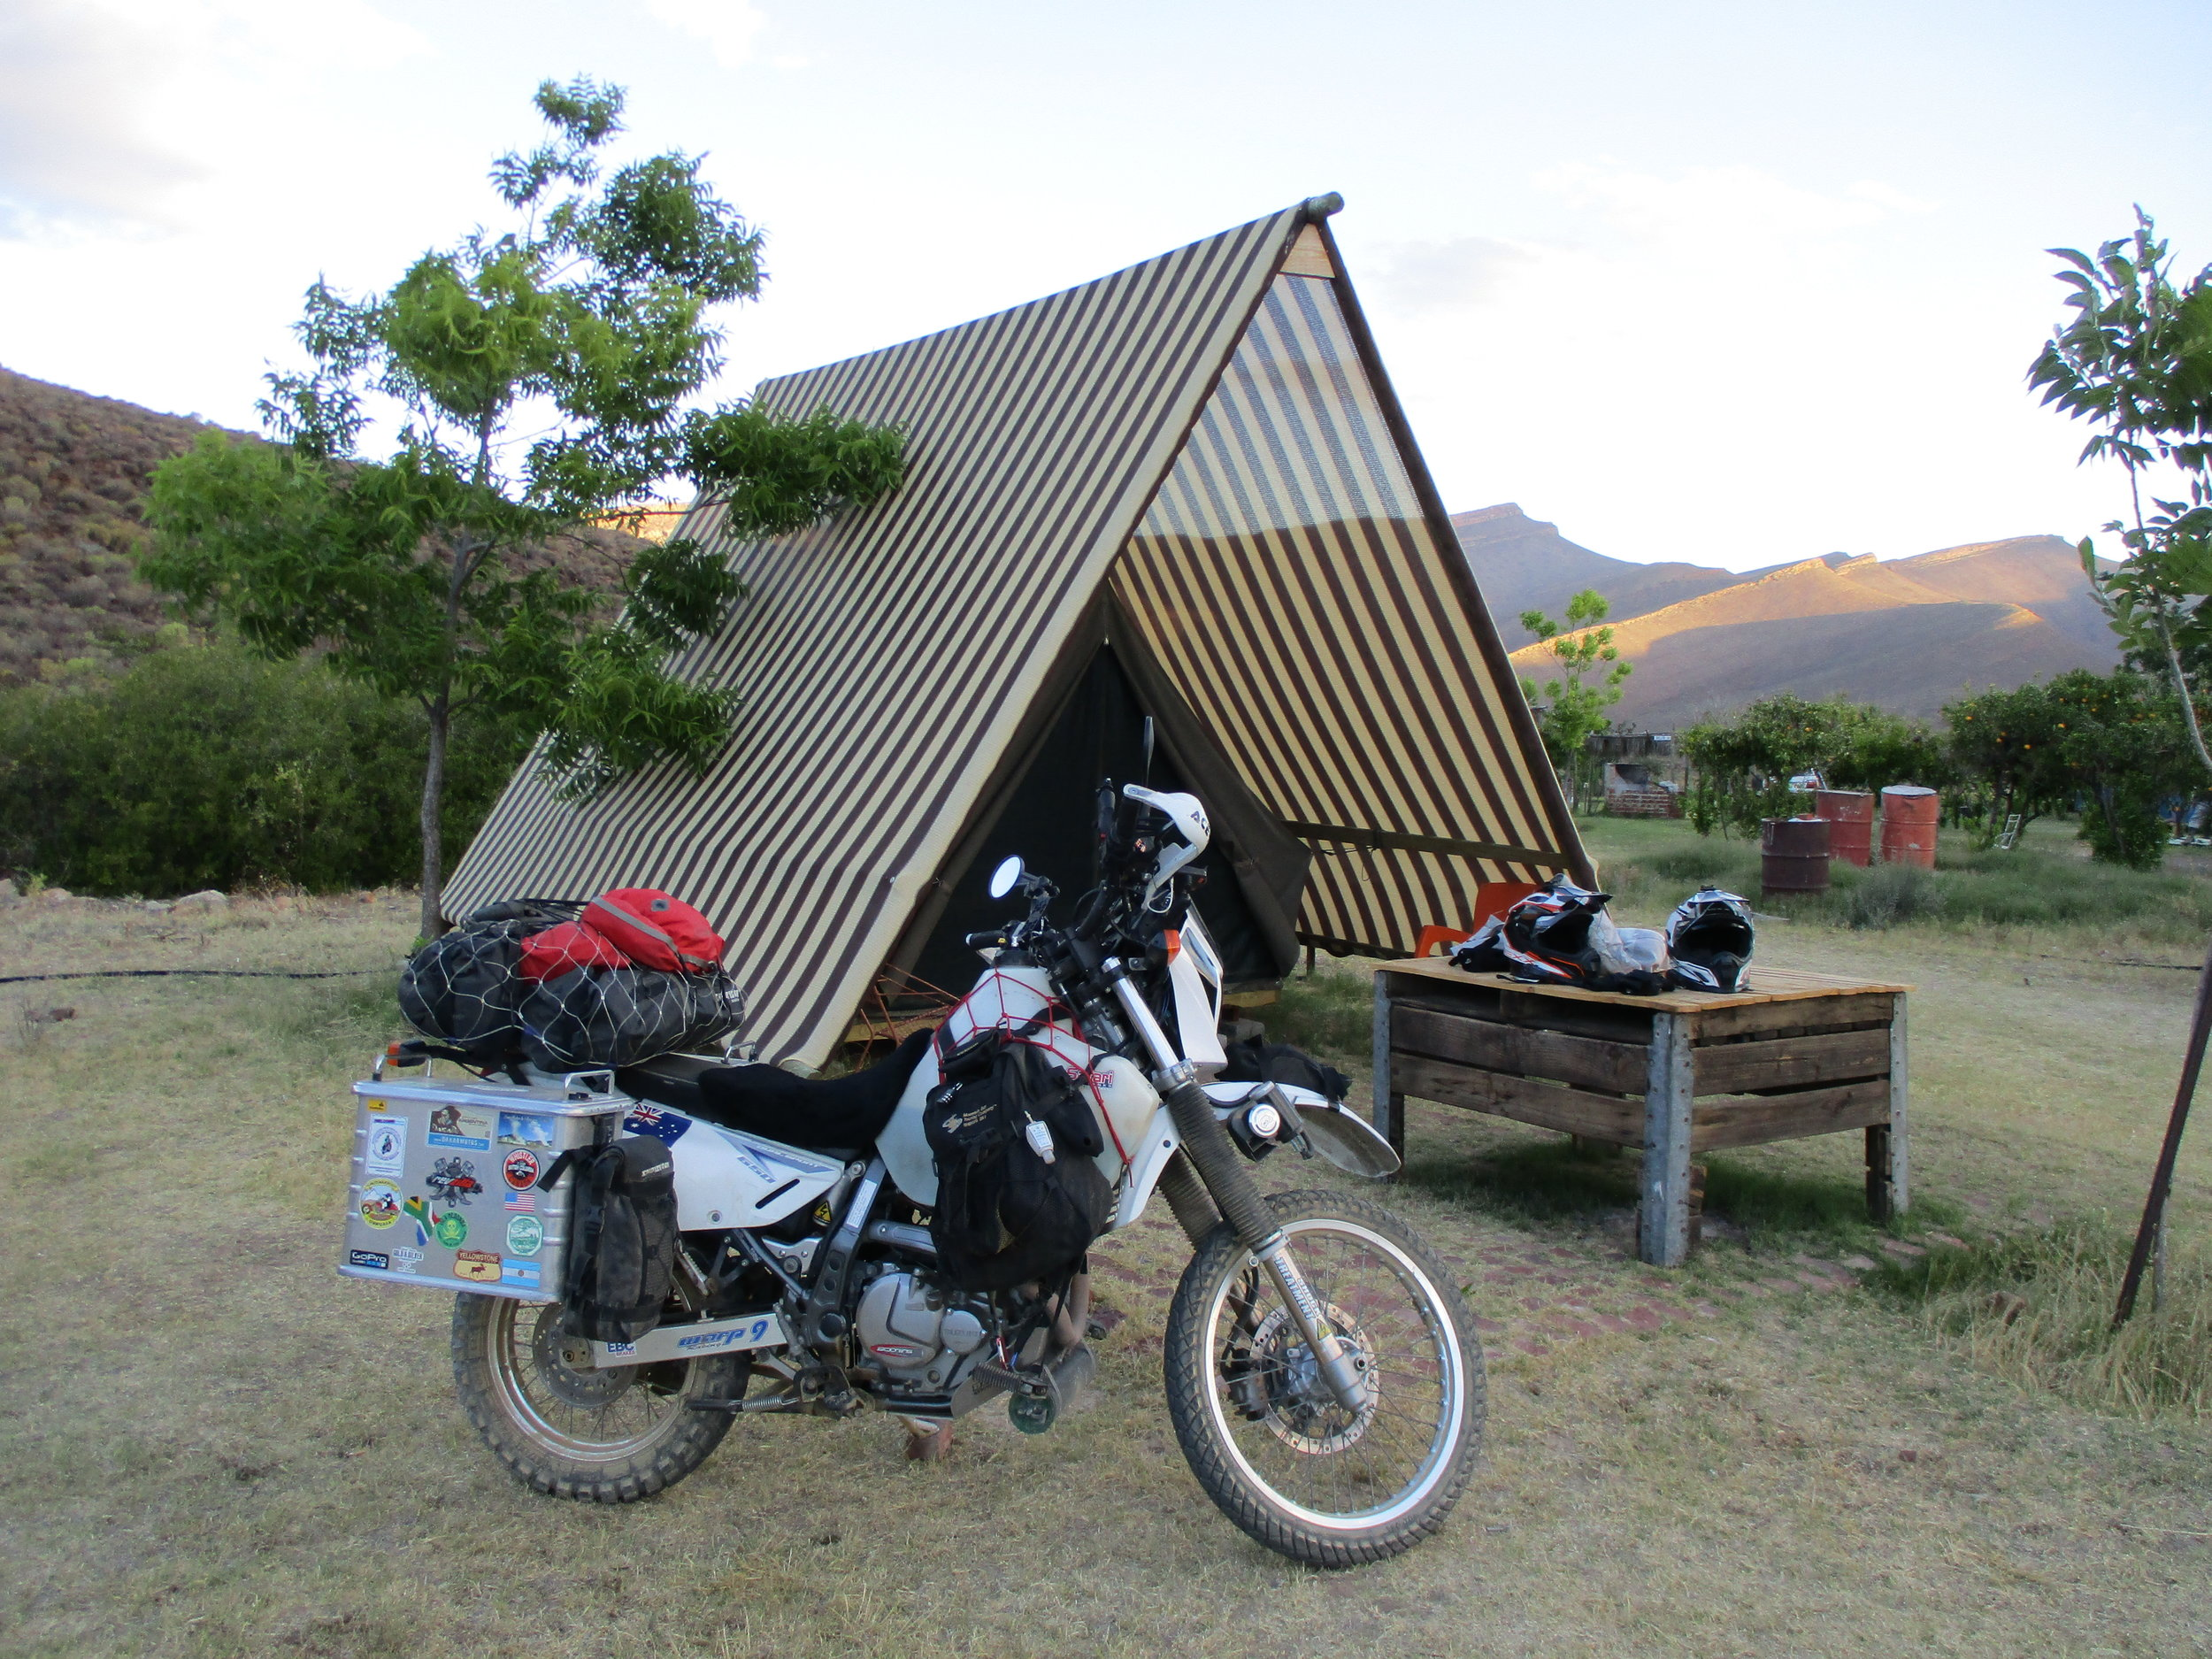 No need to get out our own gear, even the bedding is supplied. Cederberg Oasis, South Africa.